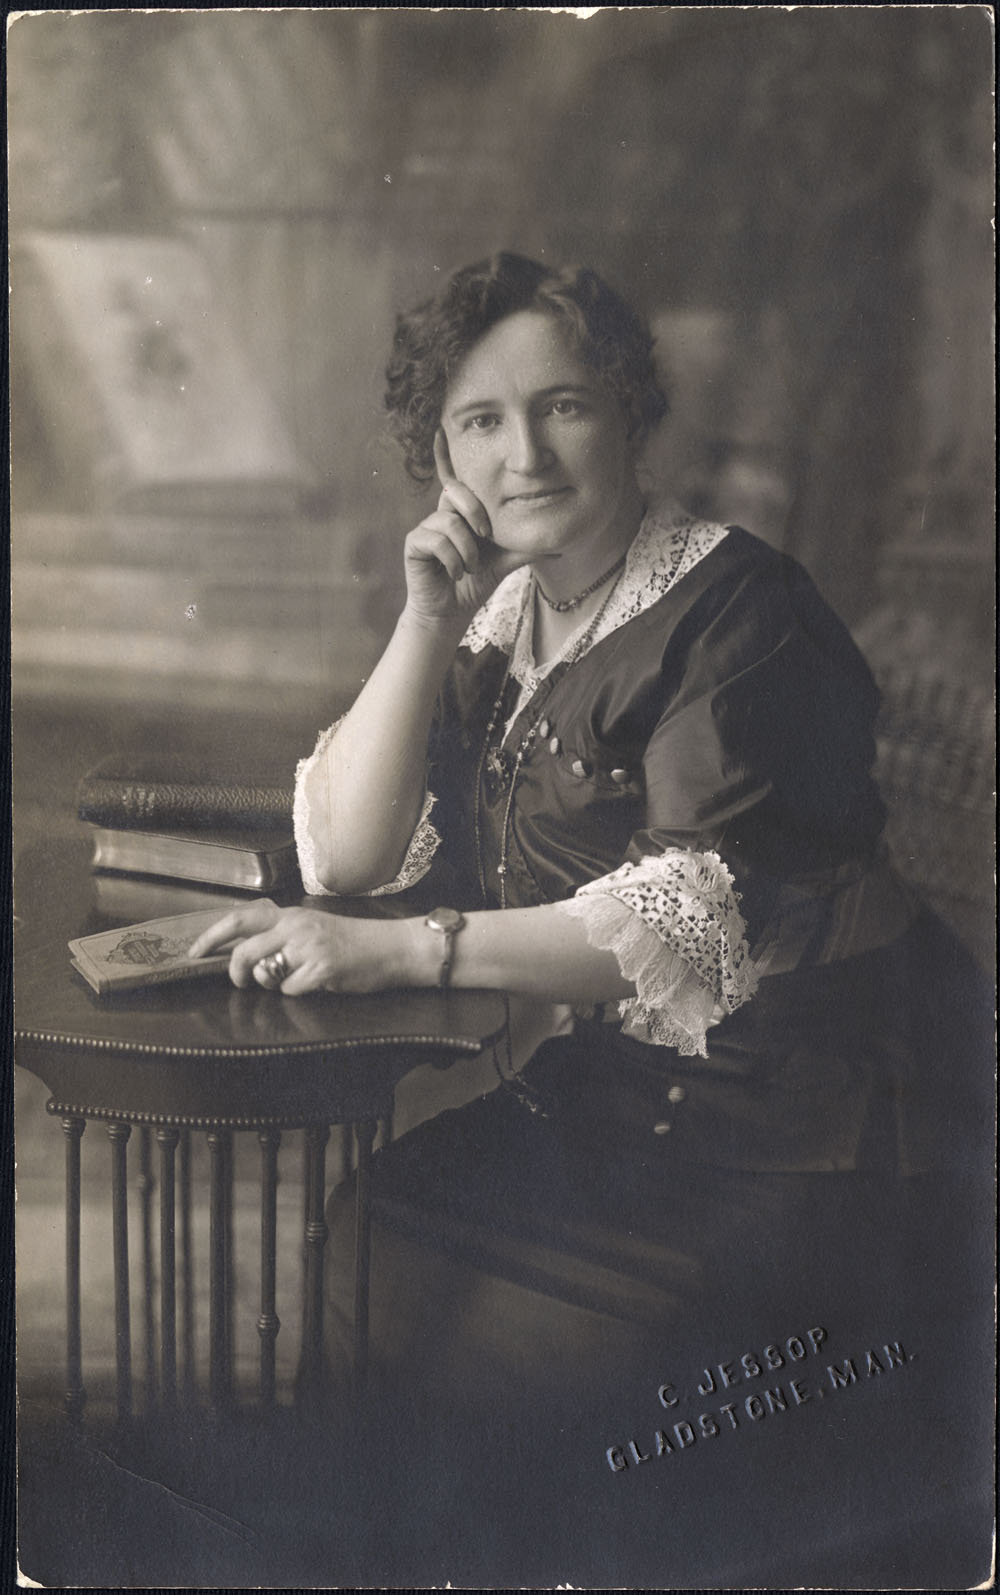 A photo portrait of a woman seated at a small table. She looks directly at the camera. Her left hand holds a piece of paper while her right hand rests under her chin and on the right side of her face. She wears a dark dress with white lace on the neckline and cuffs.